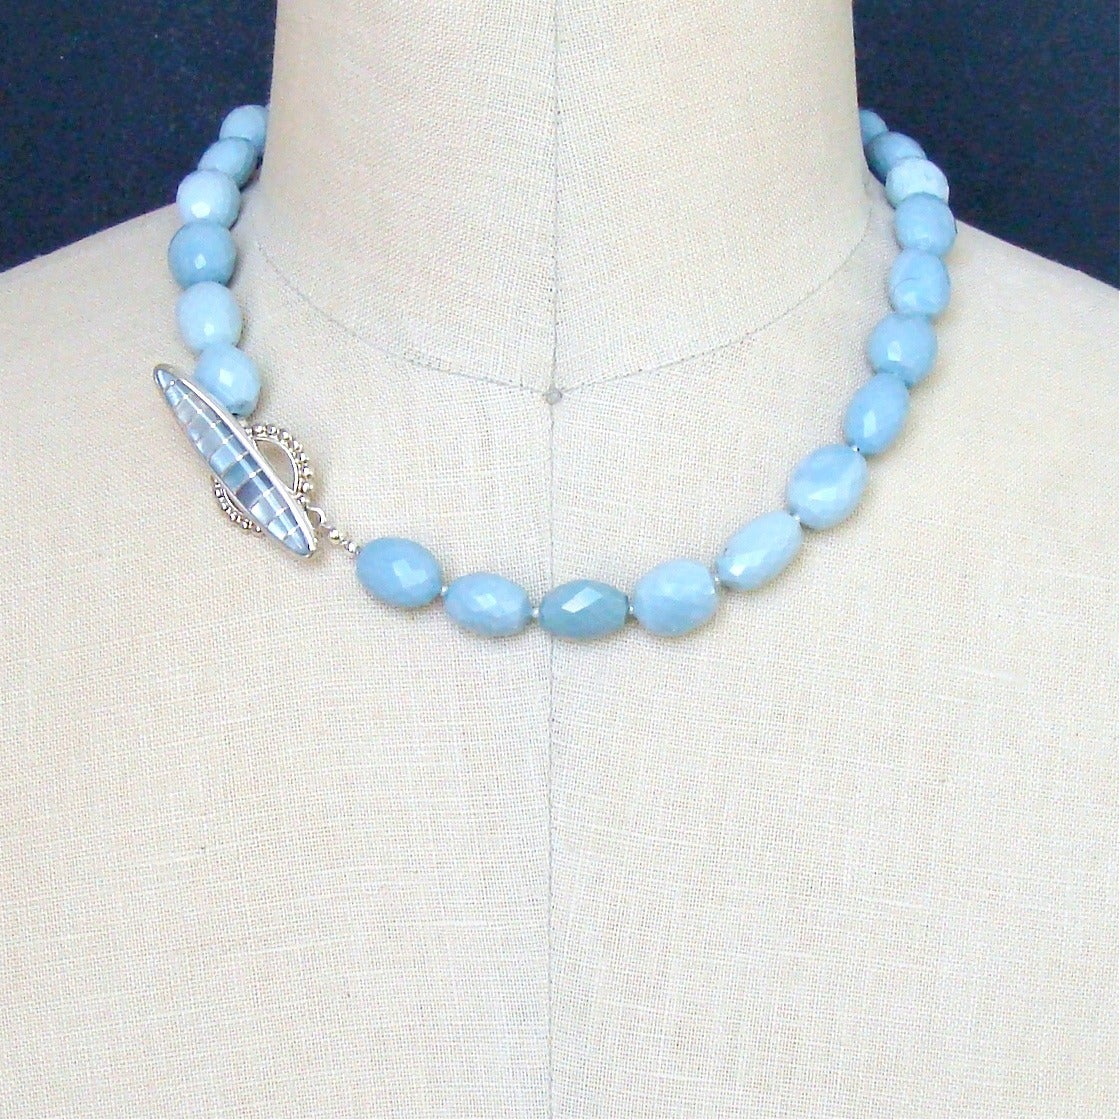 Blue Opal Mother of Pearl Inlay Choker Necklace 5